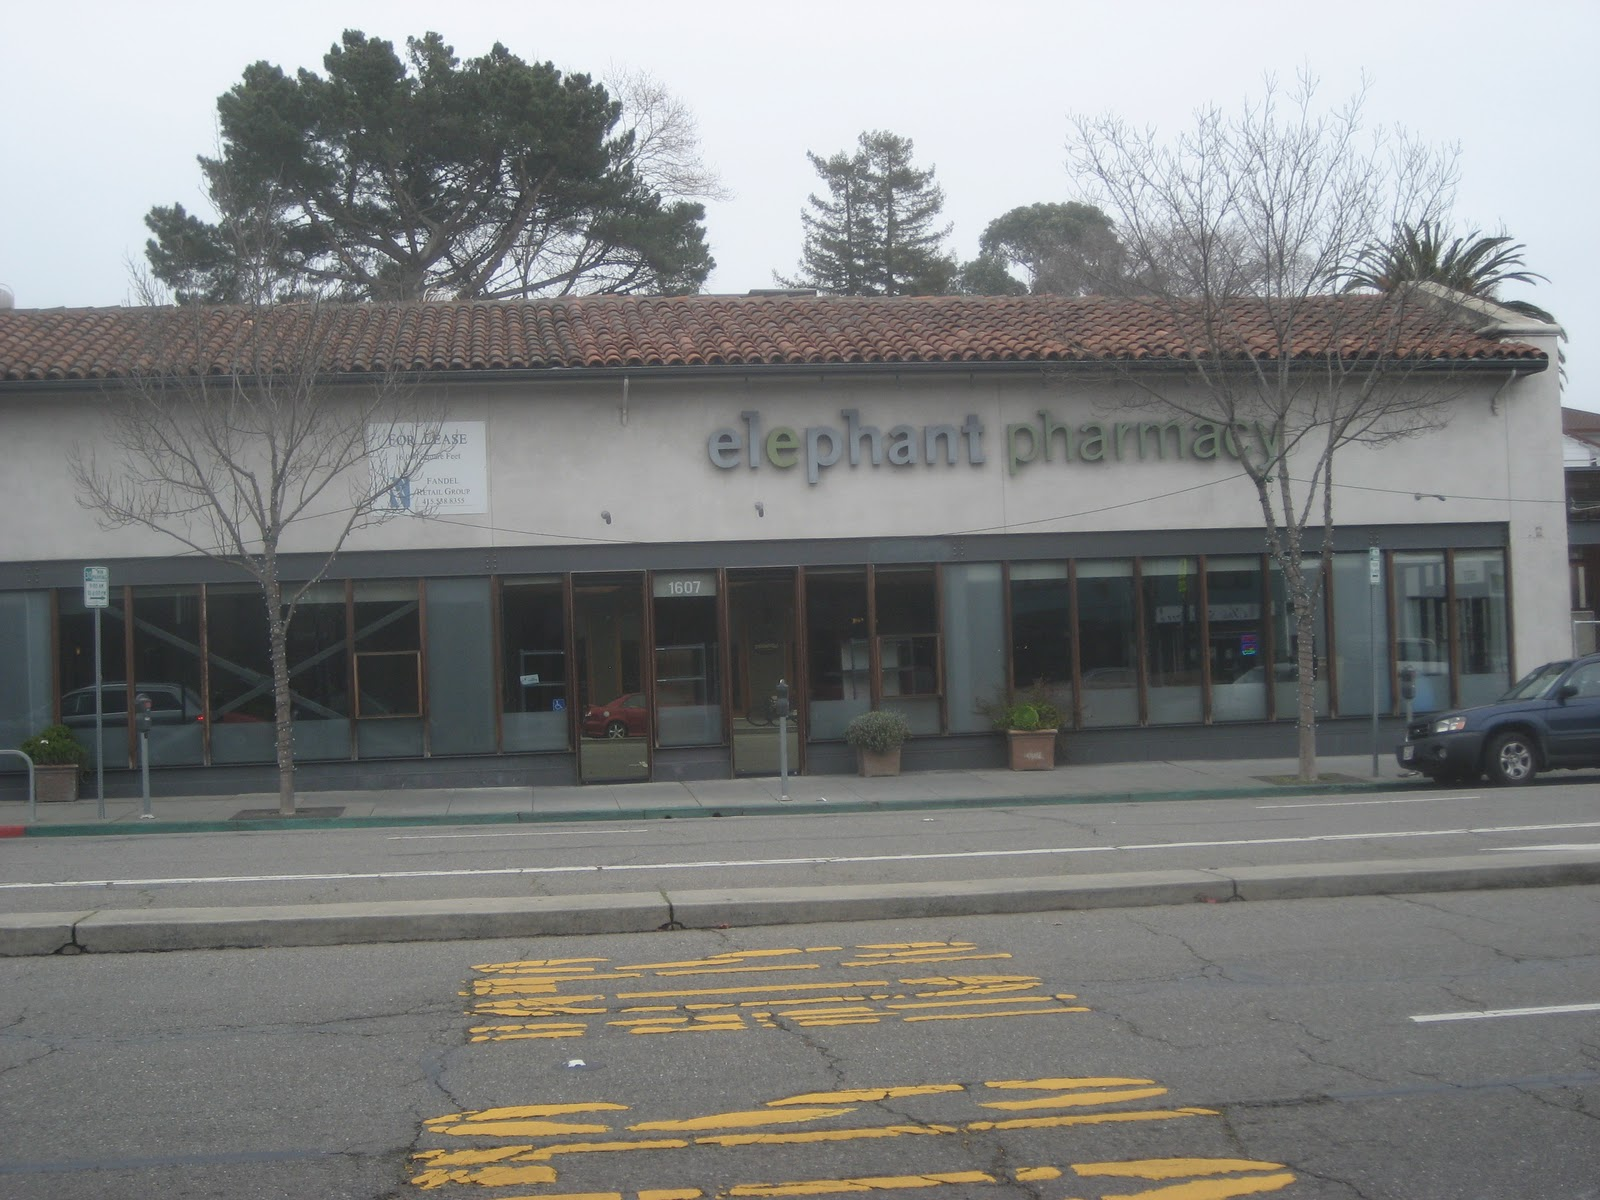 elephantpharmacy